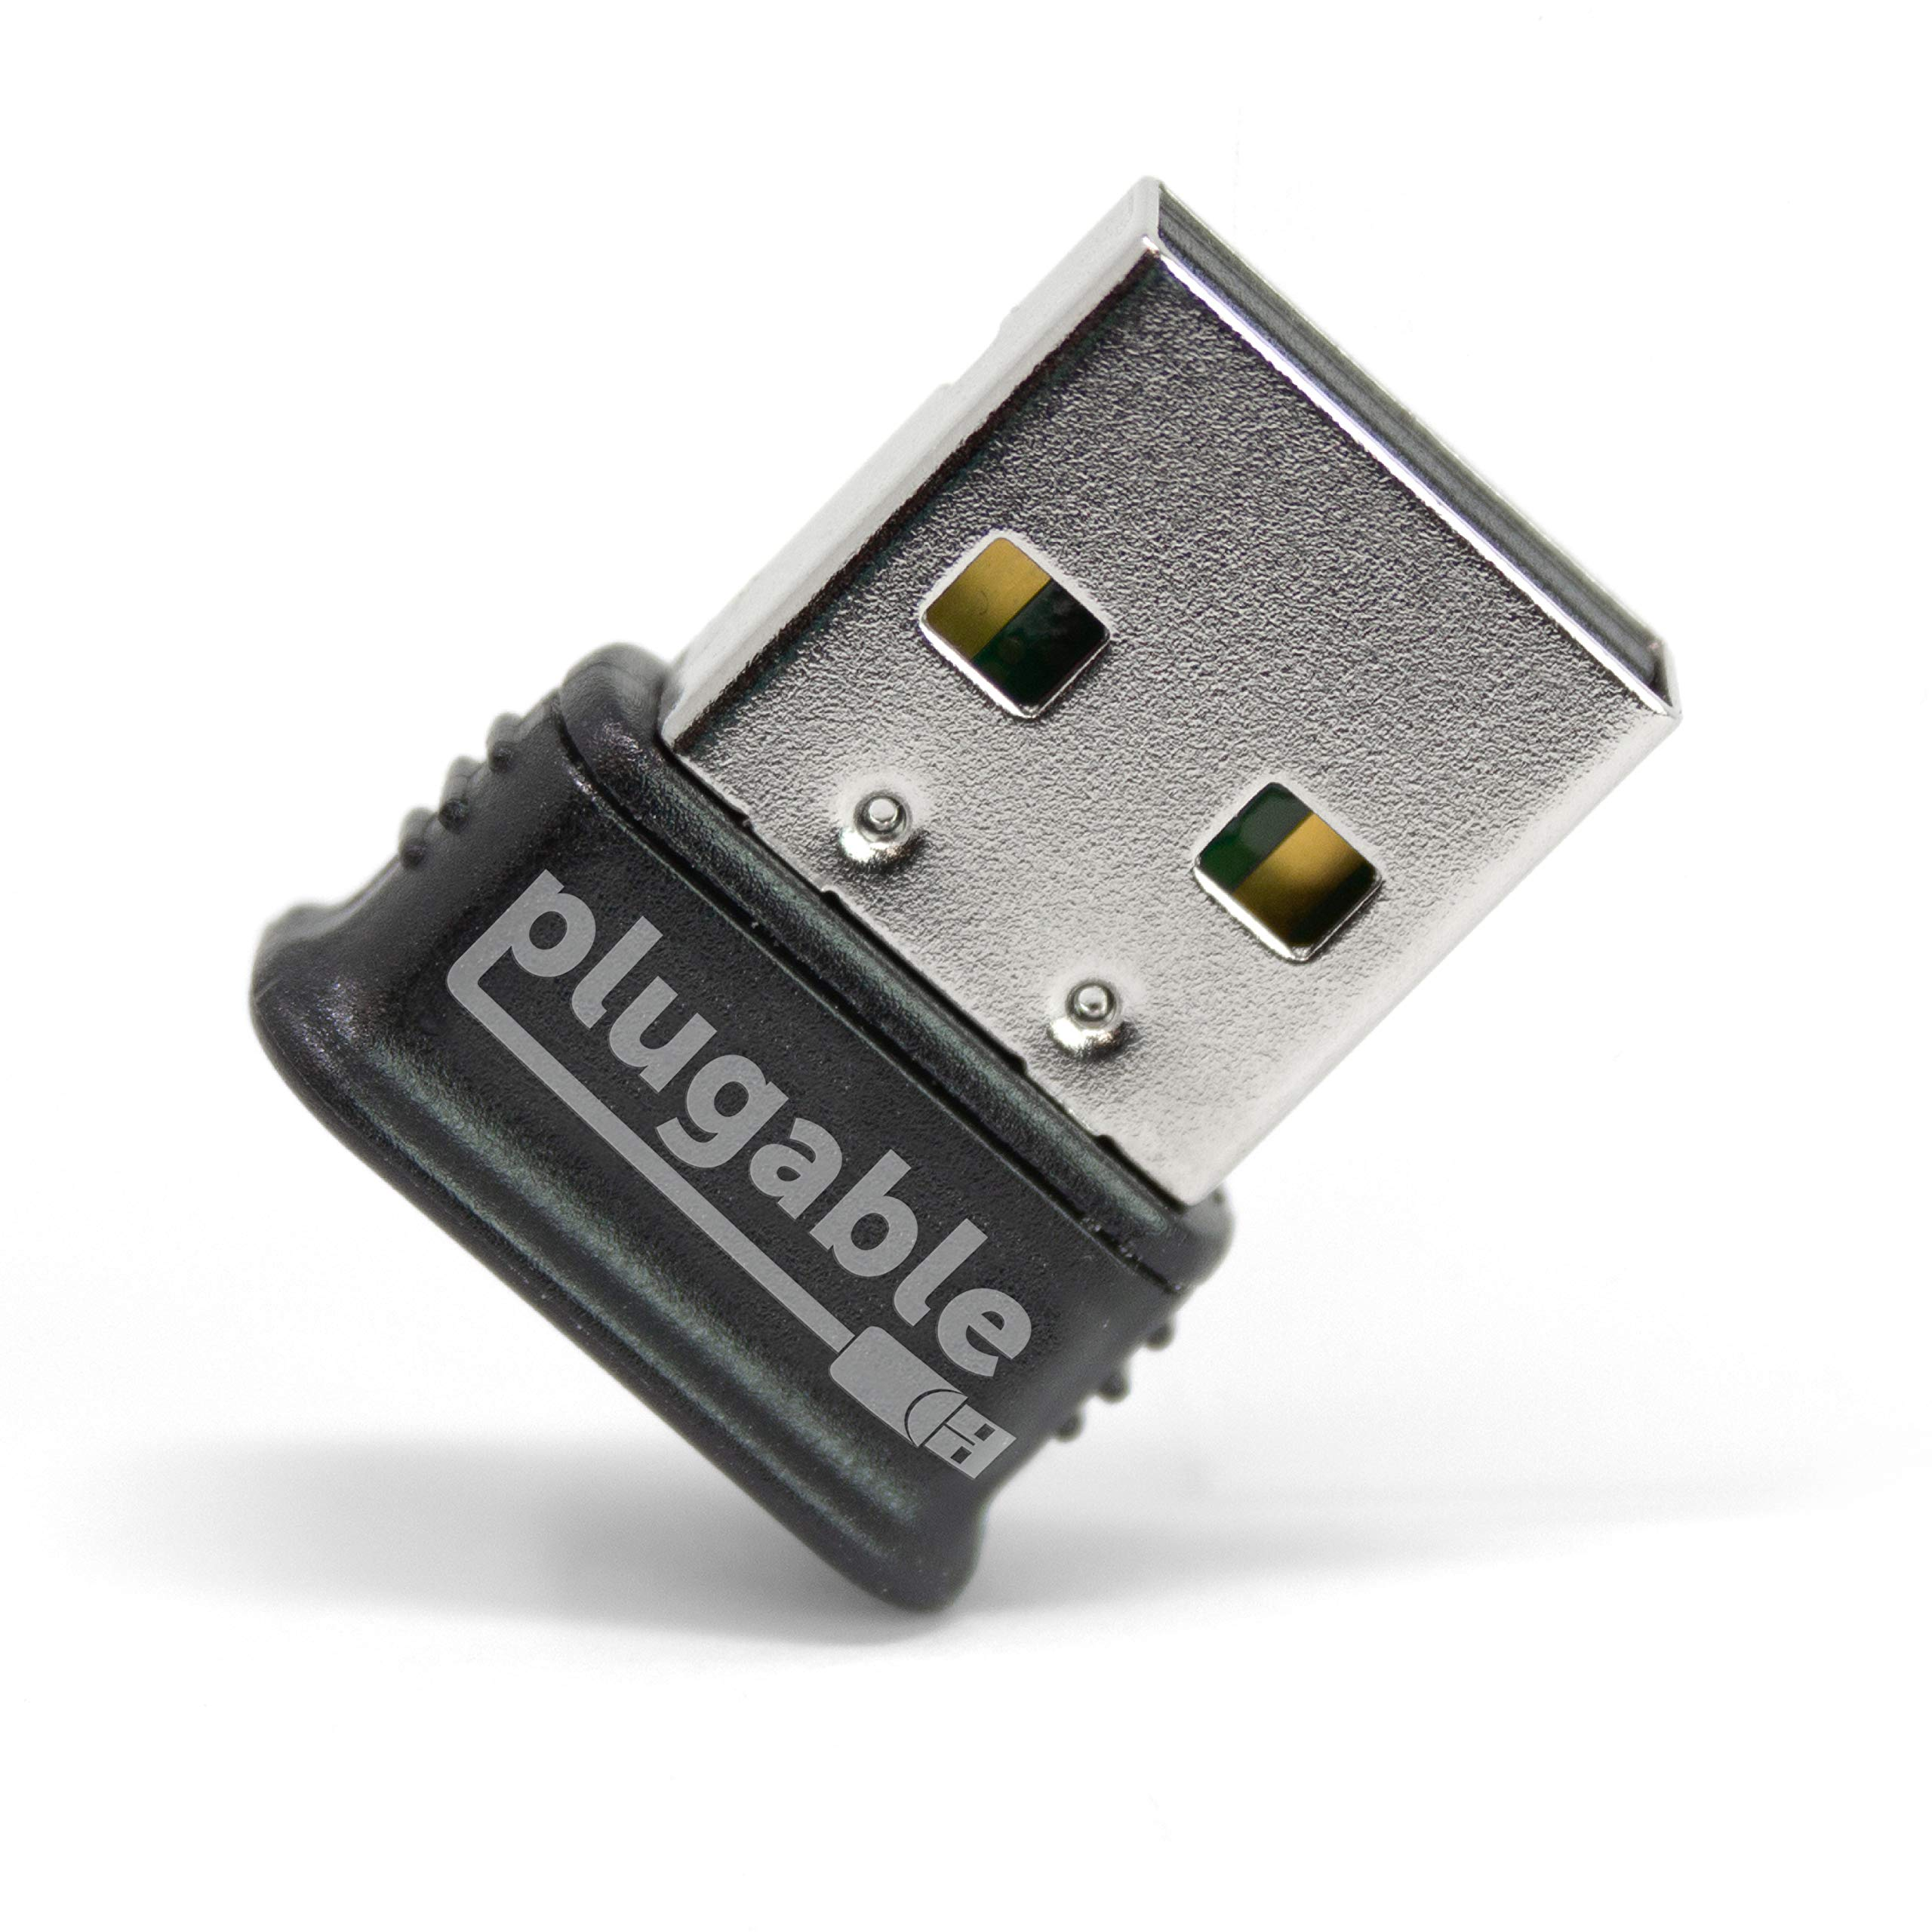 Plugable USB Bluetooth 4.0 Low Energy Micro Adapter (Windows 10, 8.1, 8, 7, Raspberry Pi, Linux Compatible; Classic Bluetooth, and Stereo Headset Compatible) by Plugable